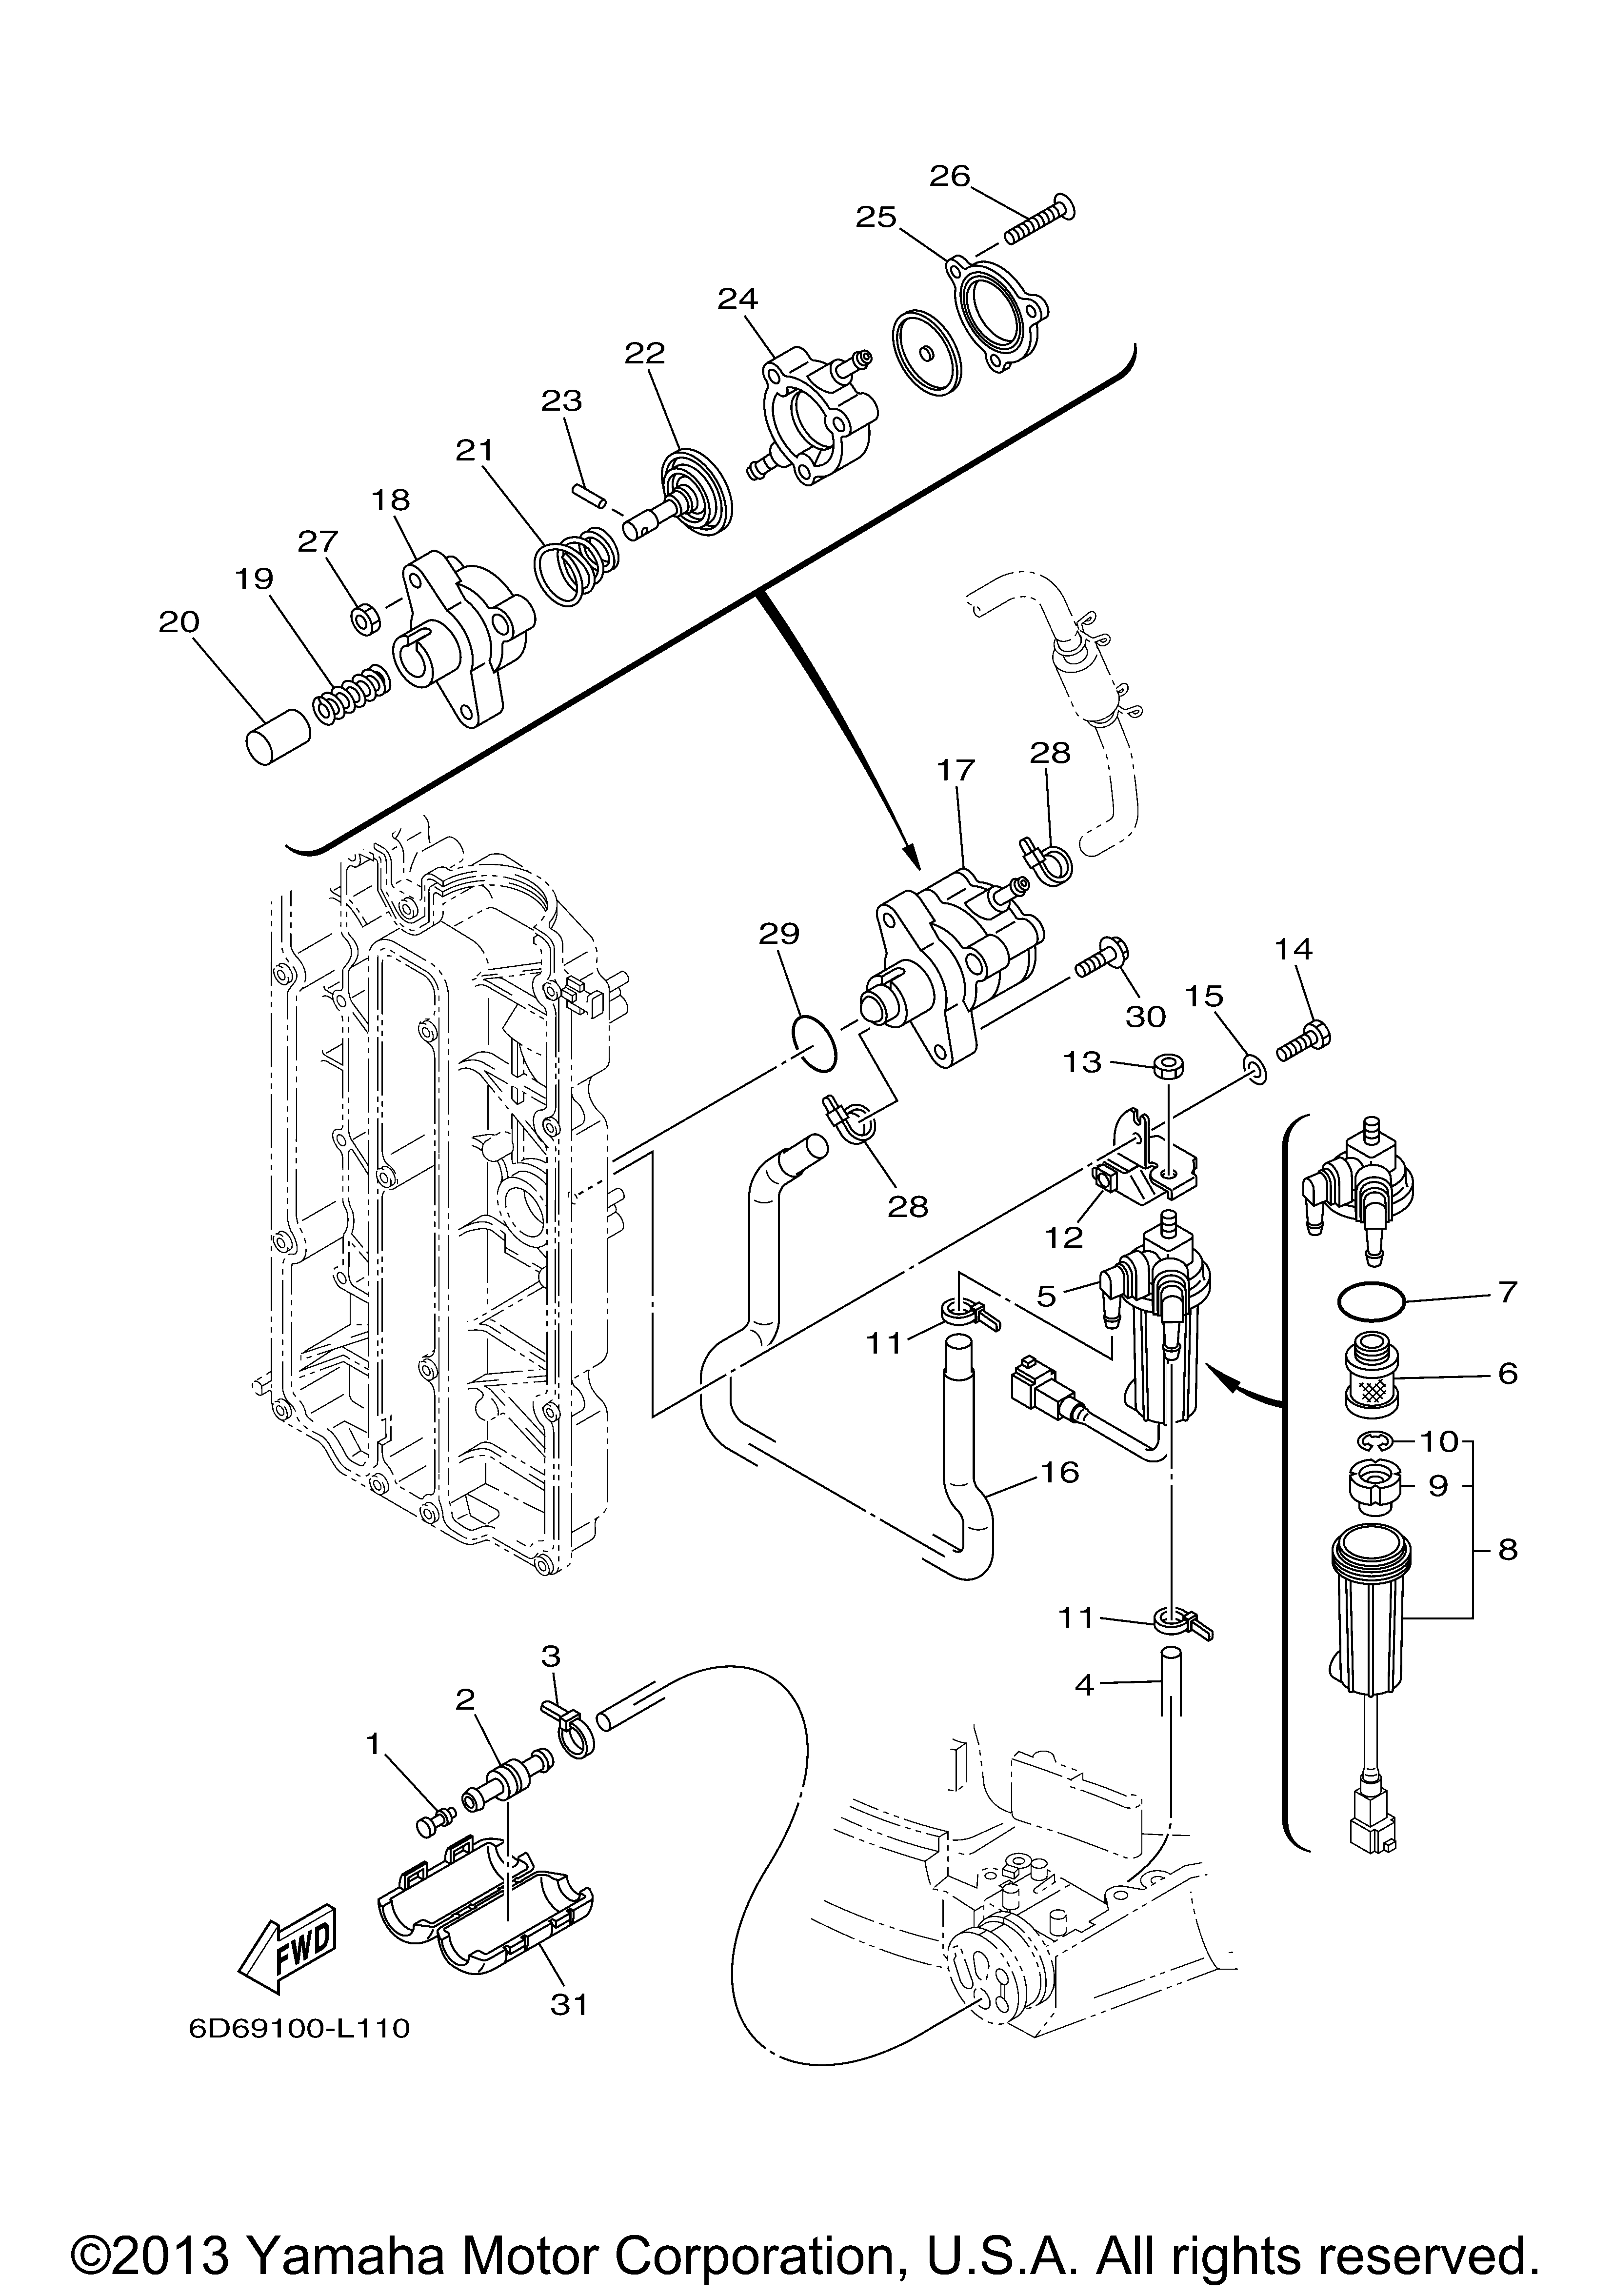 Diagram Of Yamaha Outboard Motor